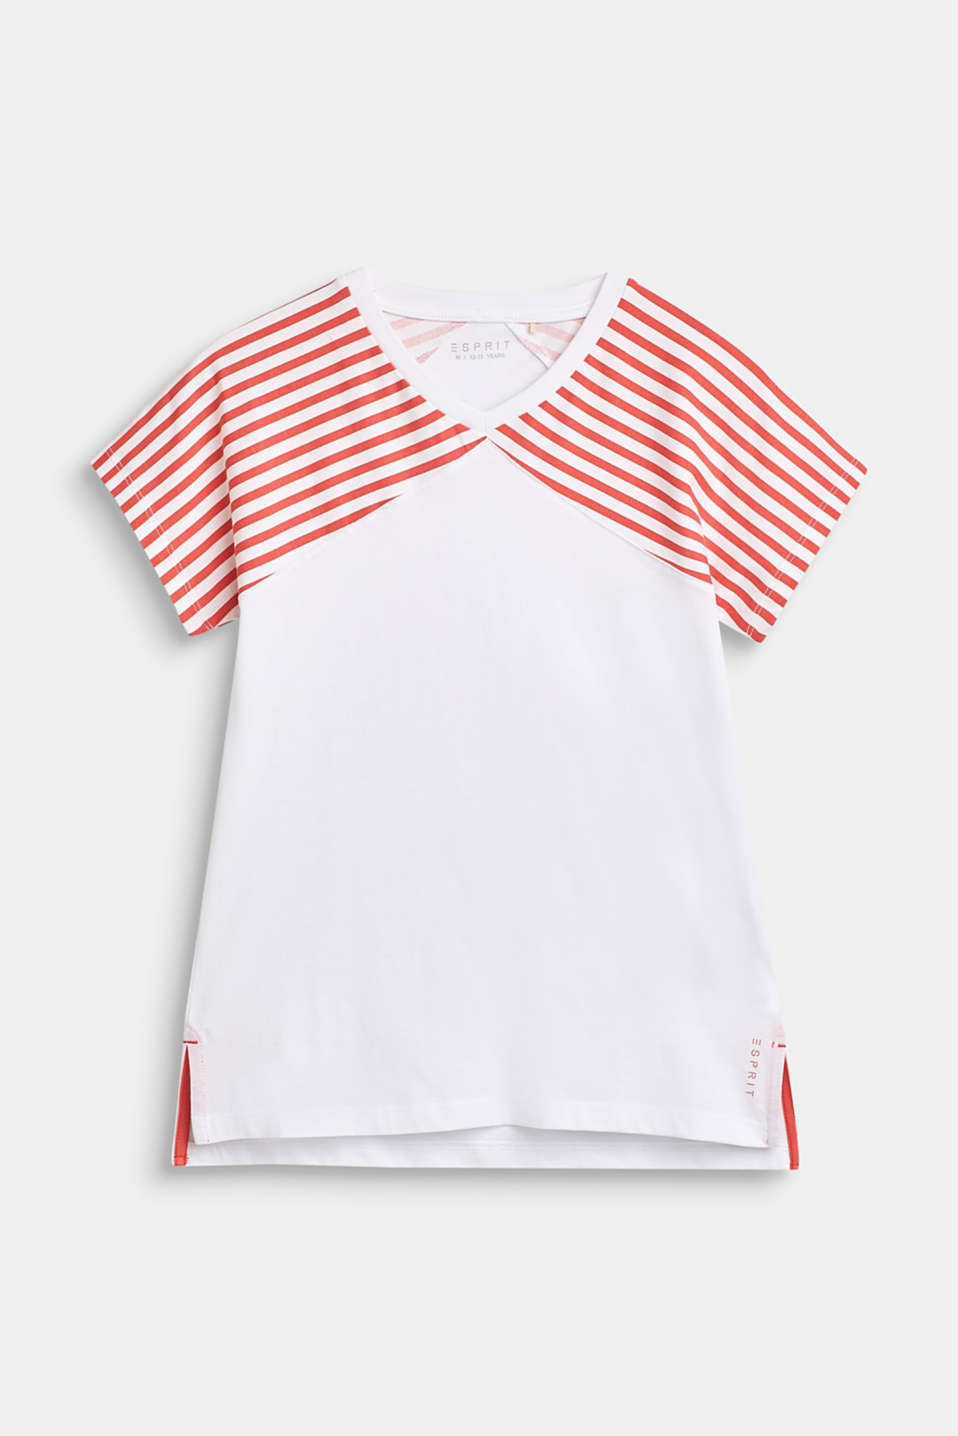 Esprit - 100% cotton T-shirt with striped sleeves